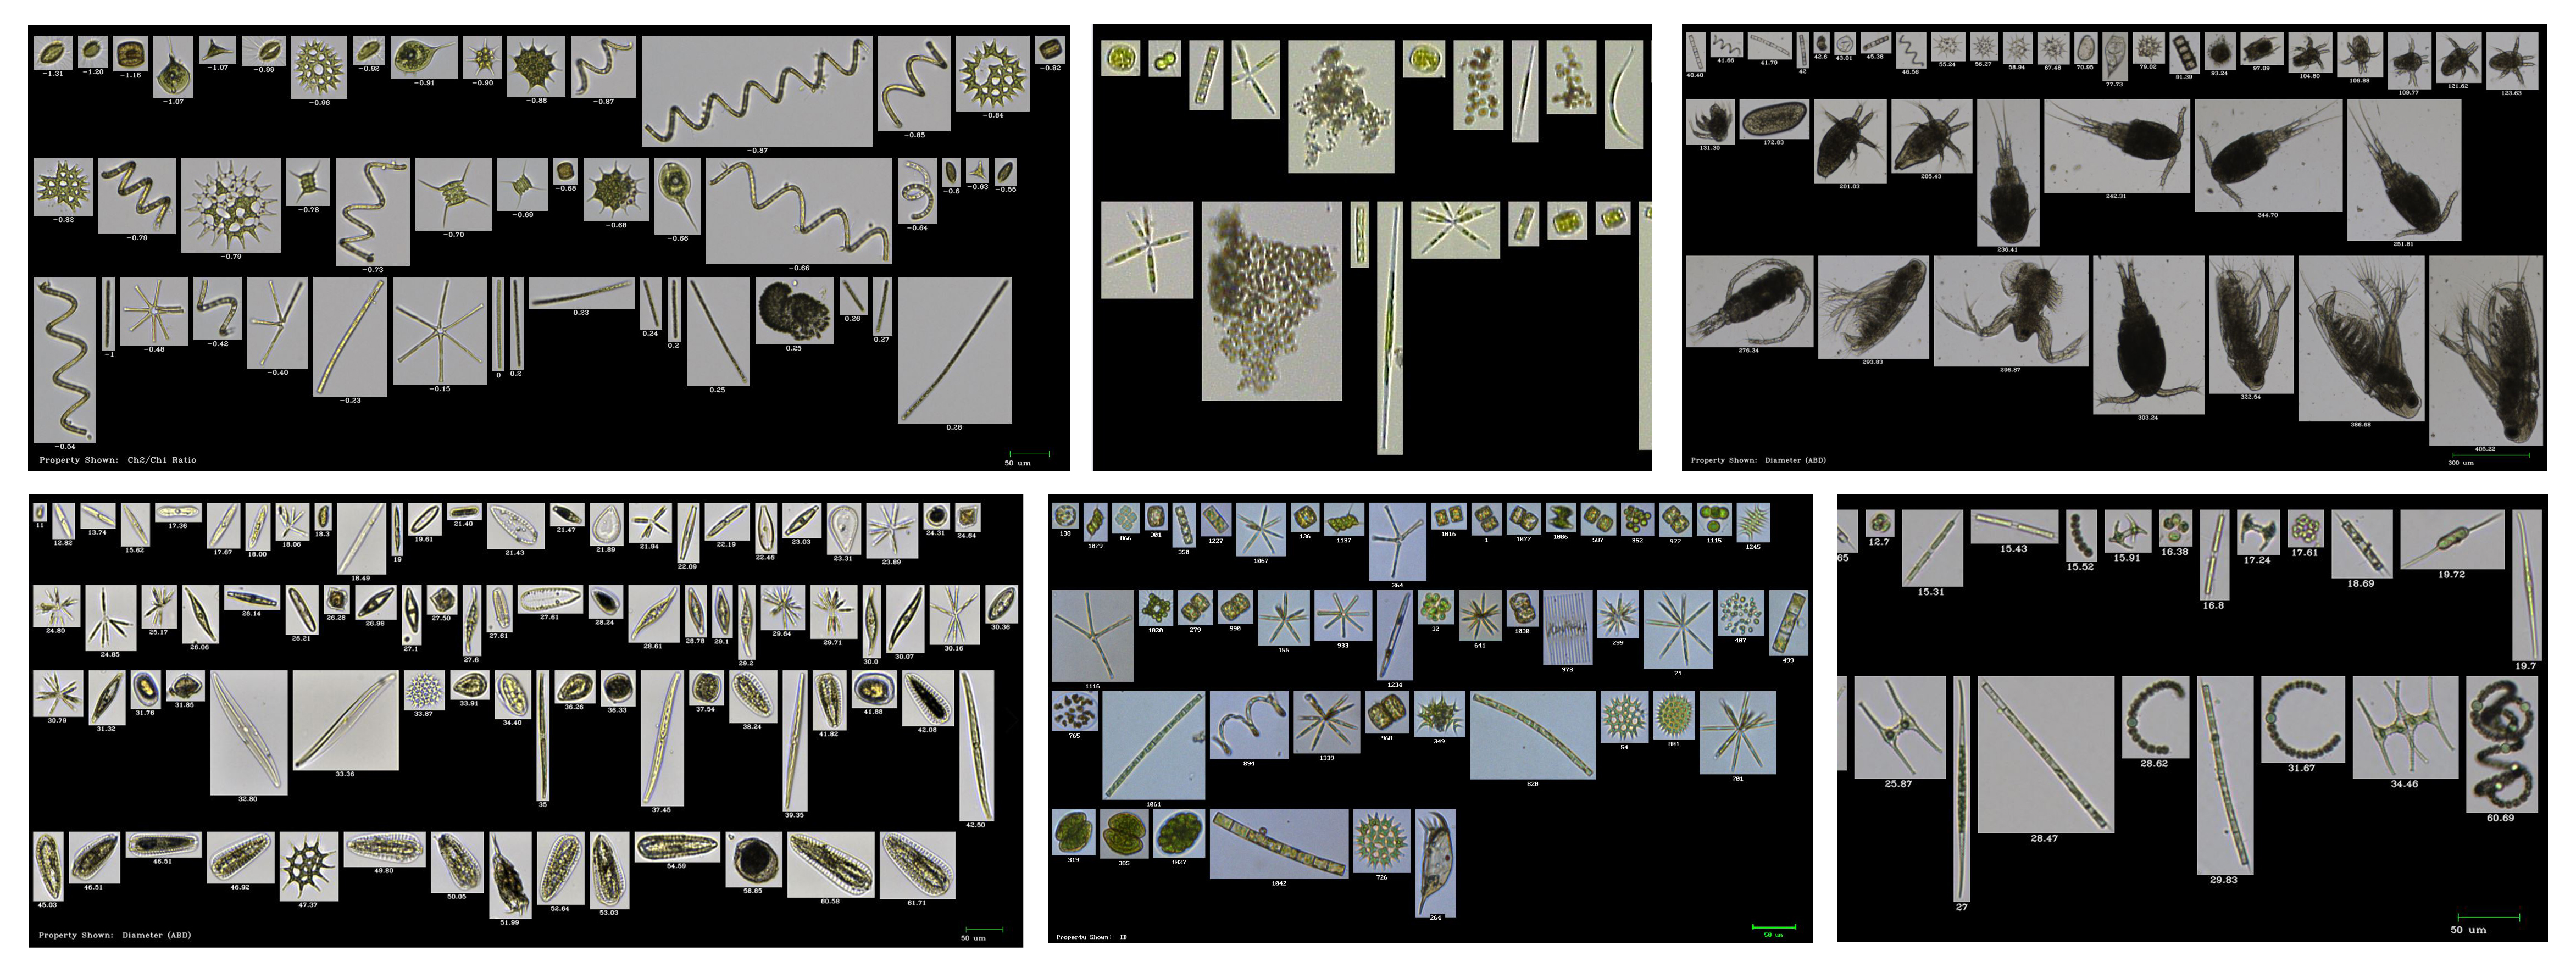 Freshwater Organisms FlowCam Collage